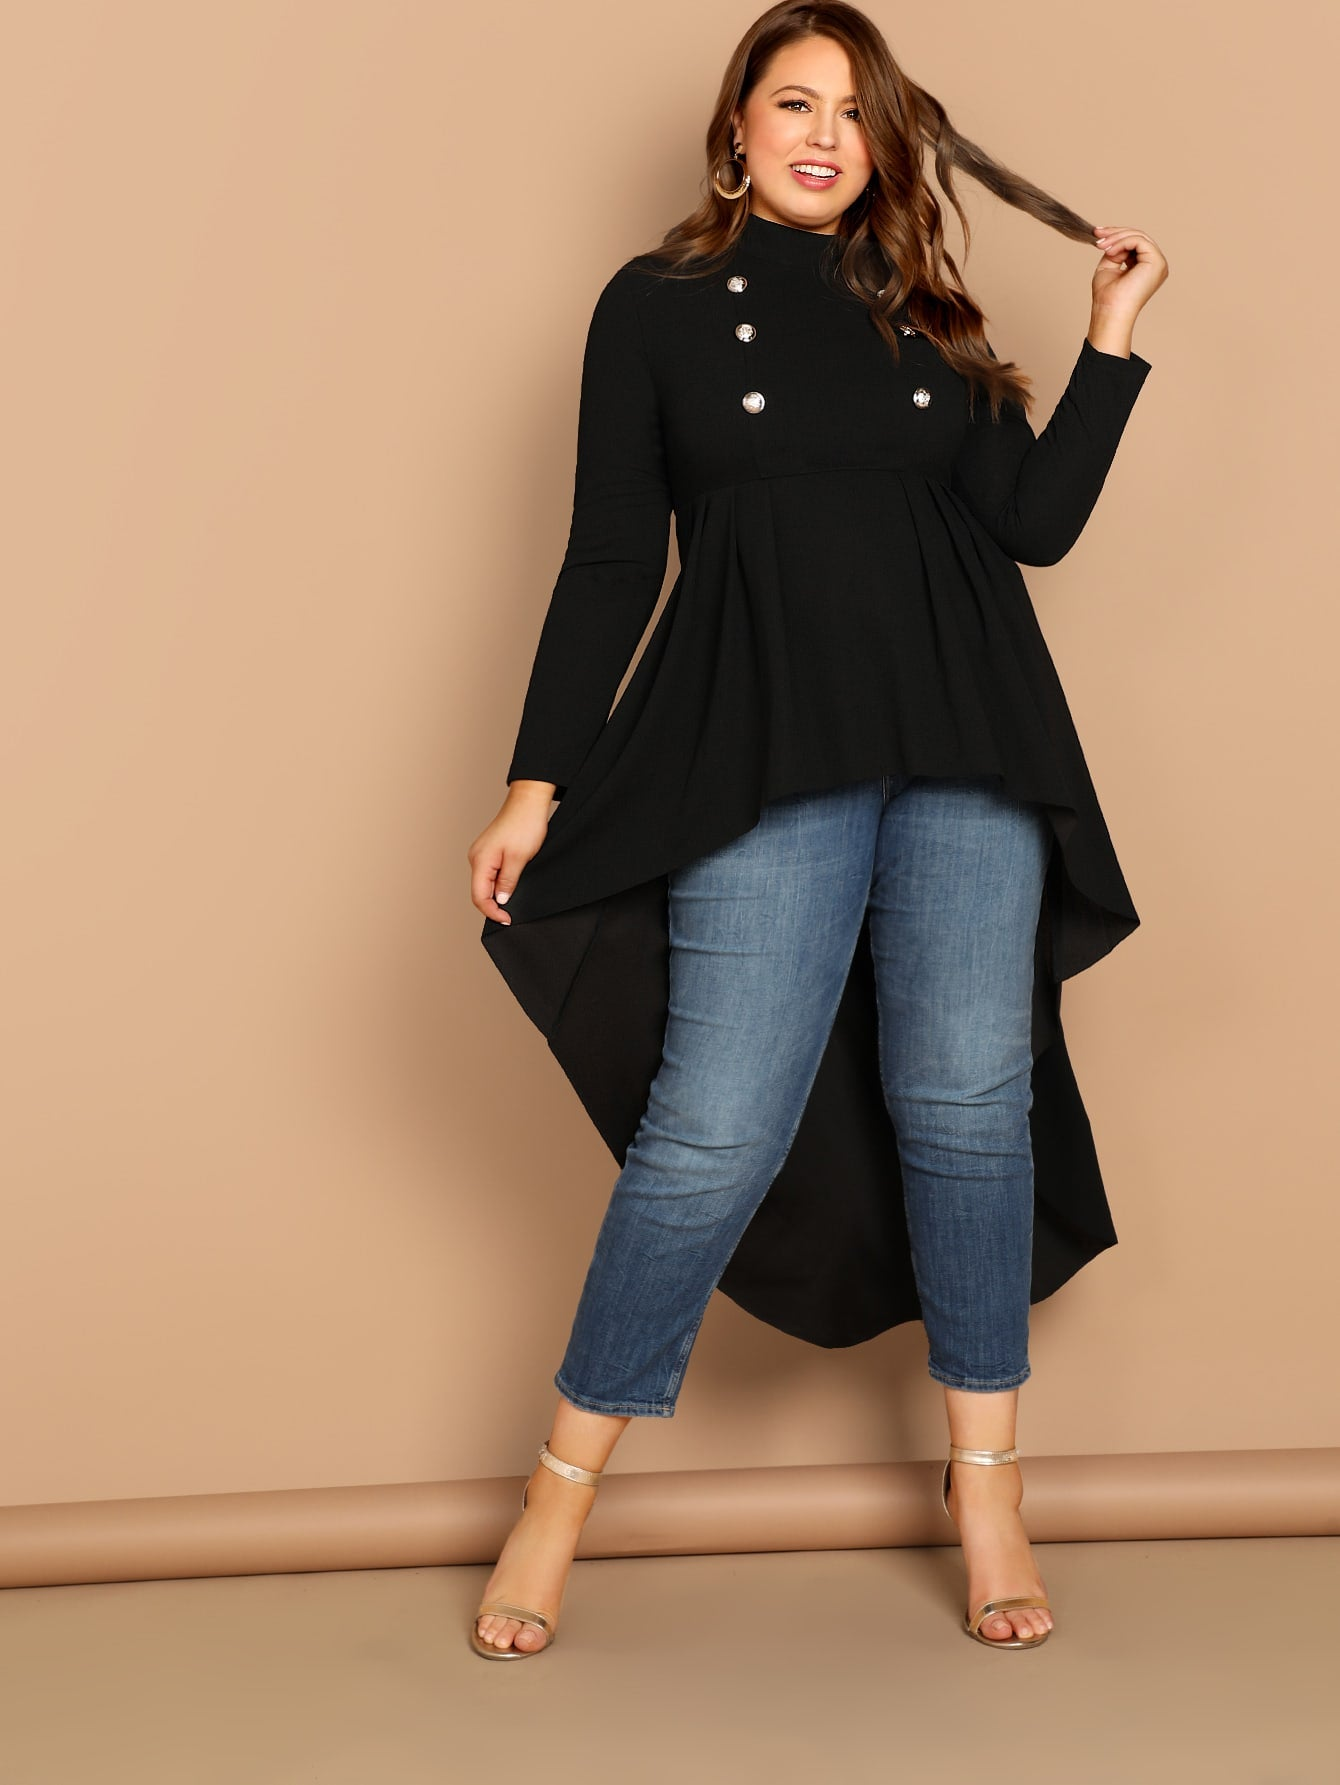 Plus Mock-neck Dip Hem Top-Trendy-JayBoutique-Black-0XL-Trendy-JayBoutique